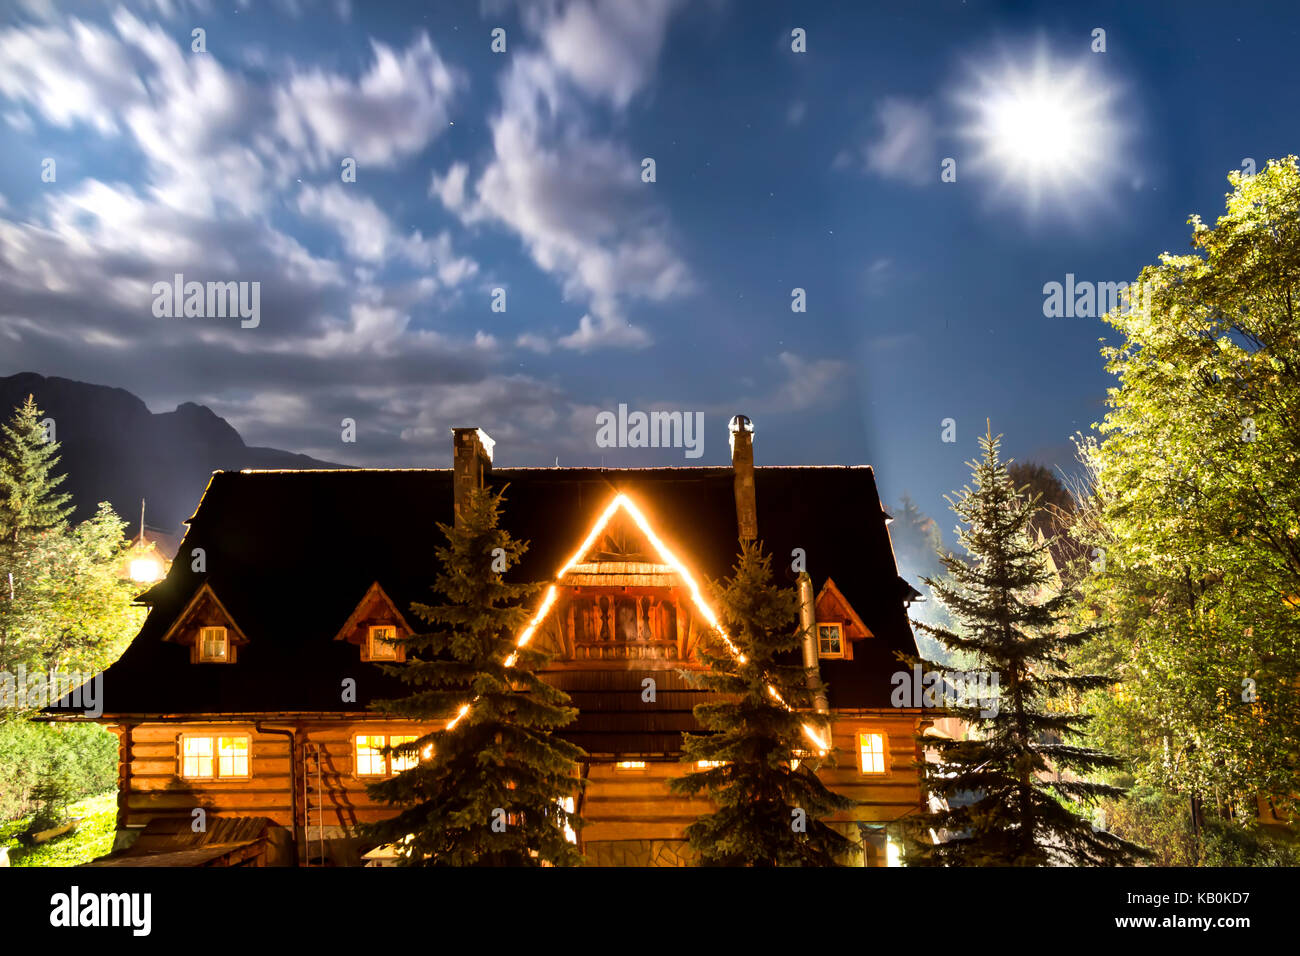 High mountain in Poland. National Park - Tatras. Ecological reserve.  Old country house against sky .Shining moon. - Stock Image